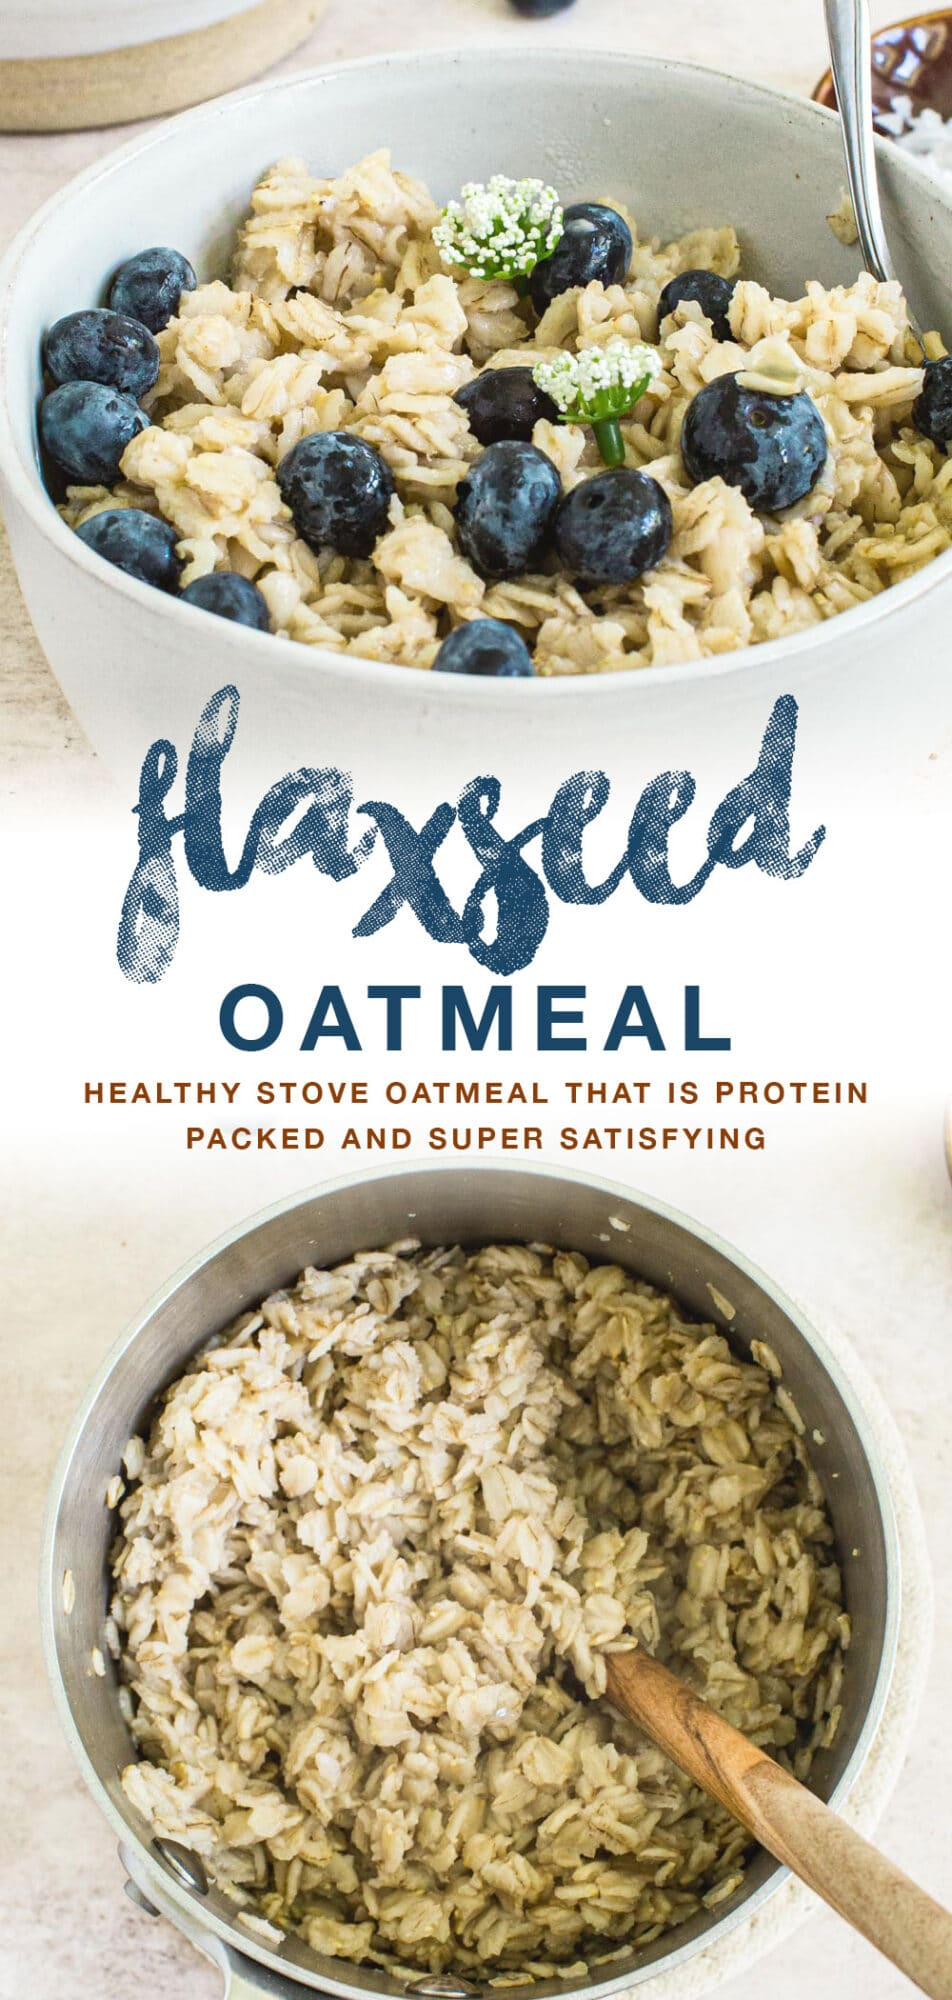 Flaxseed oatmeal double image with blue title.